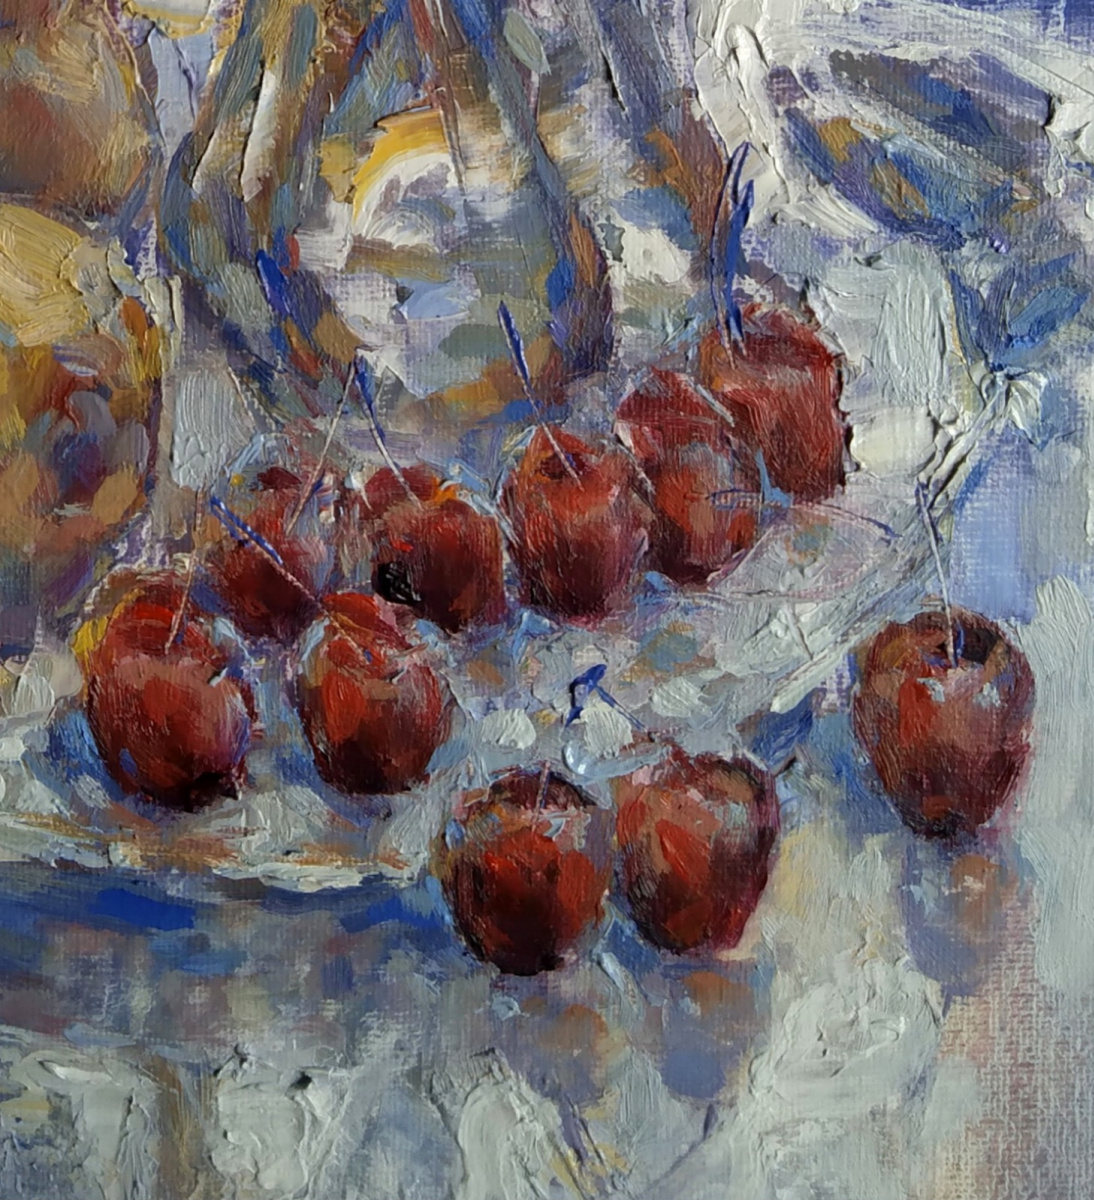 By the window with Cherries